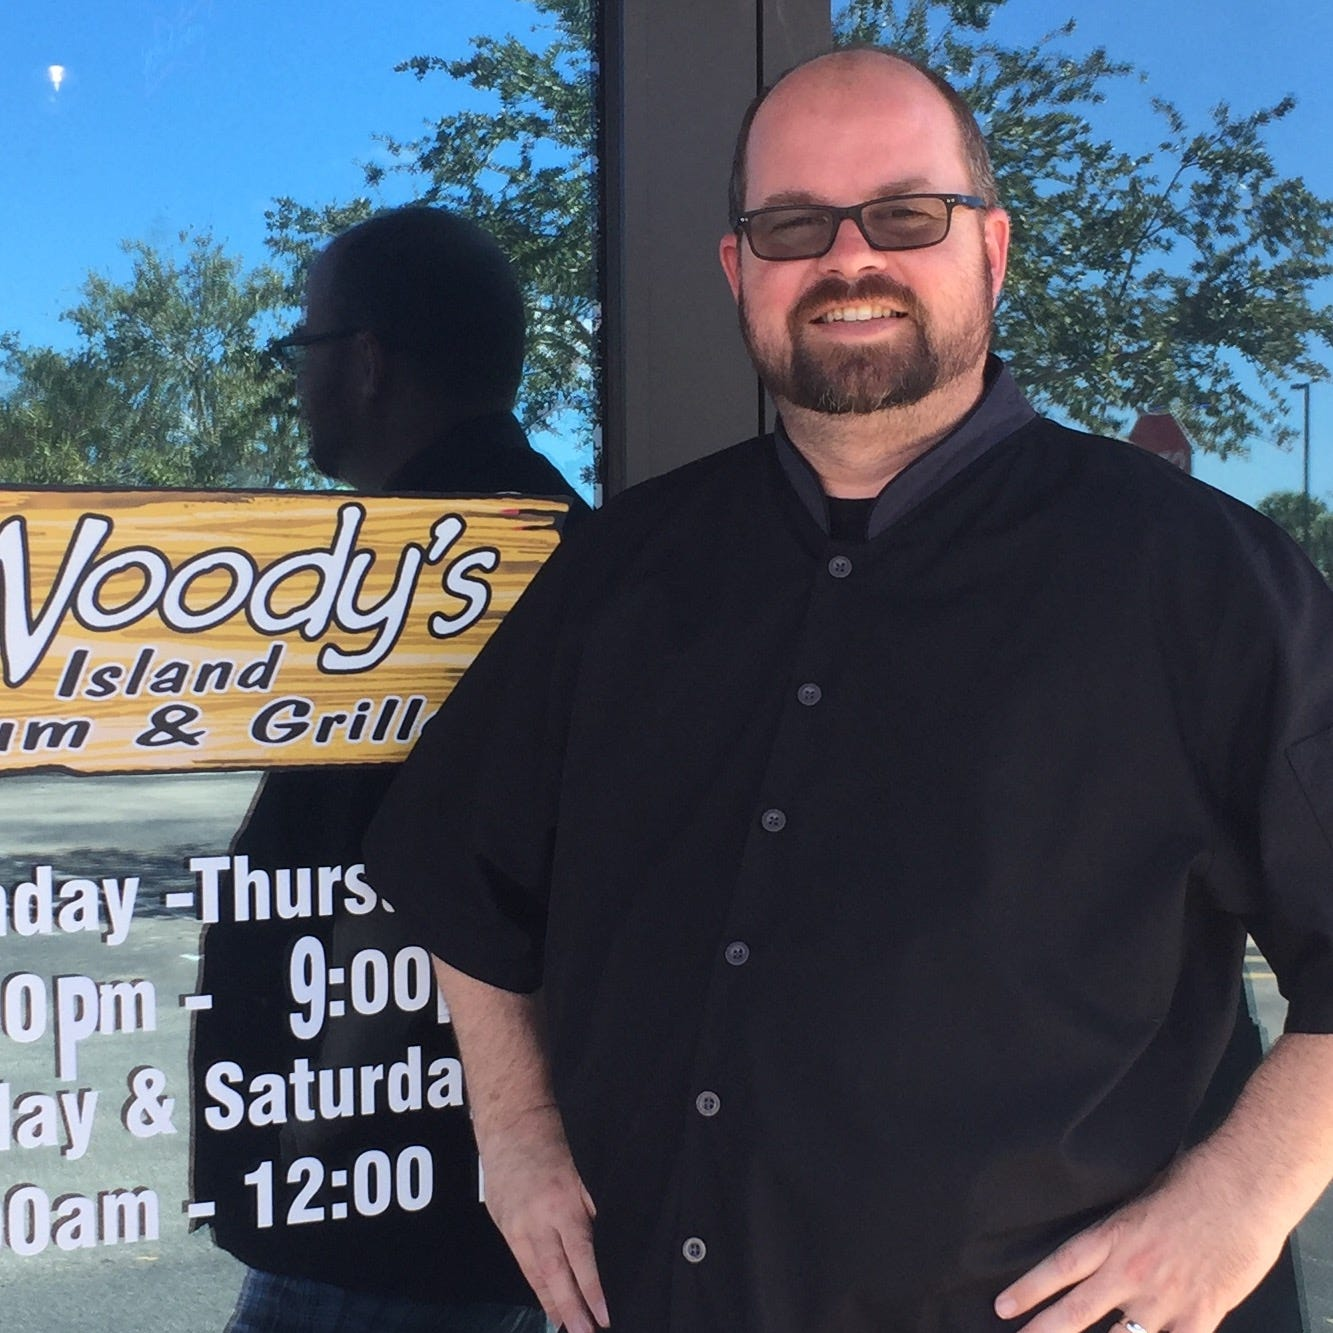 Woody's Surfside in Cape Coral's Bob Mulroy — Where the Chefs Eat